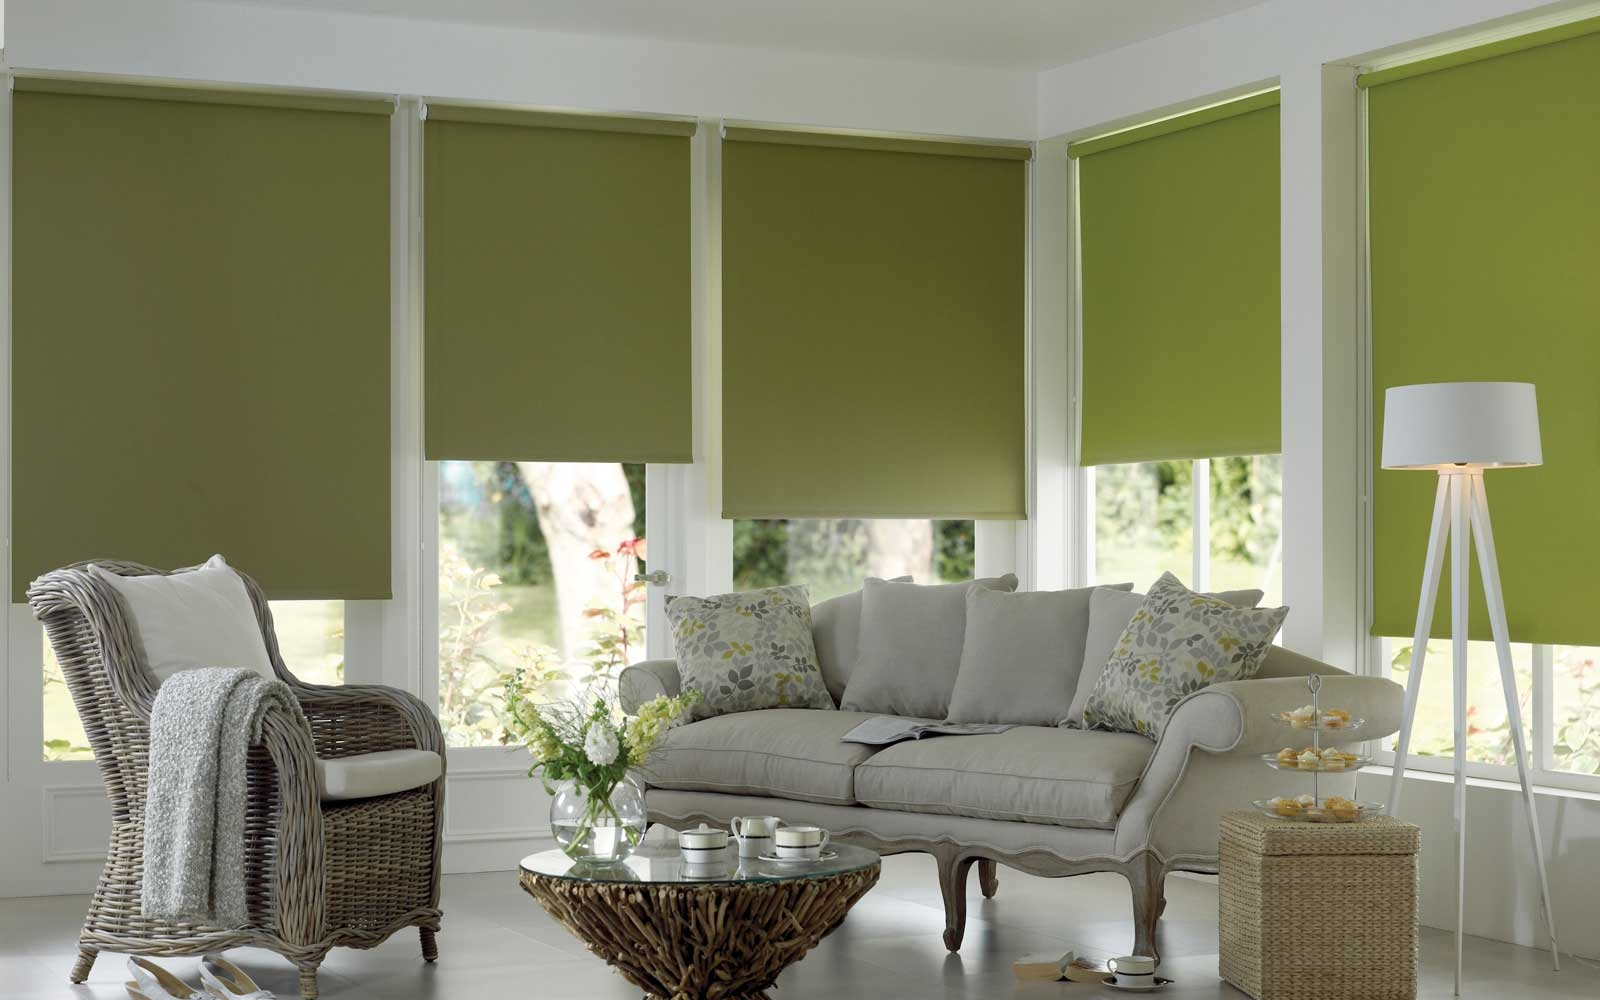 Plain Roller Blind Green Surrey Blinds Shutters Pertaining To Plain Roller Blinds (Image 7 of 15)